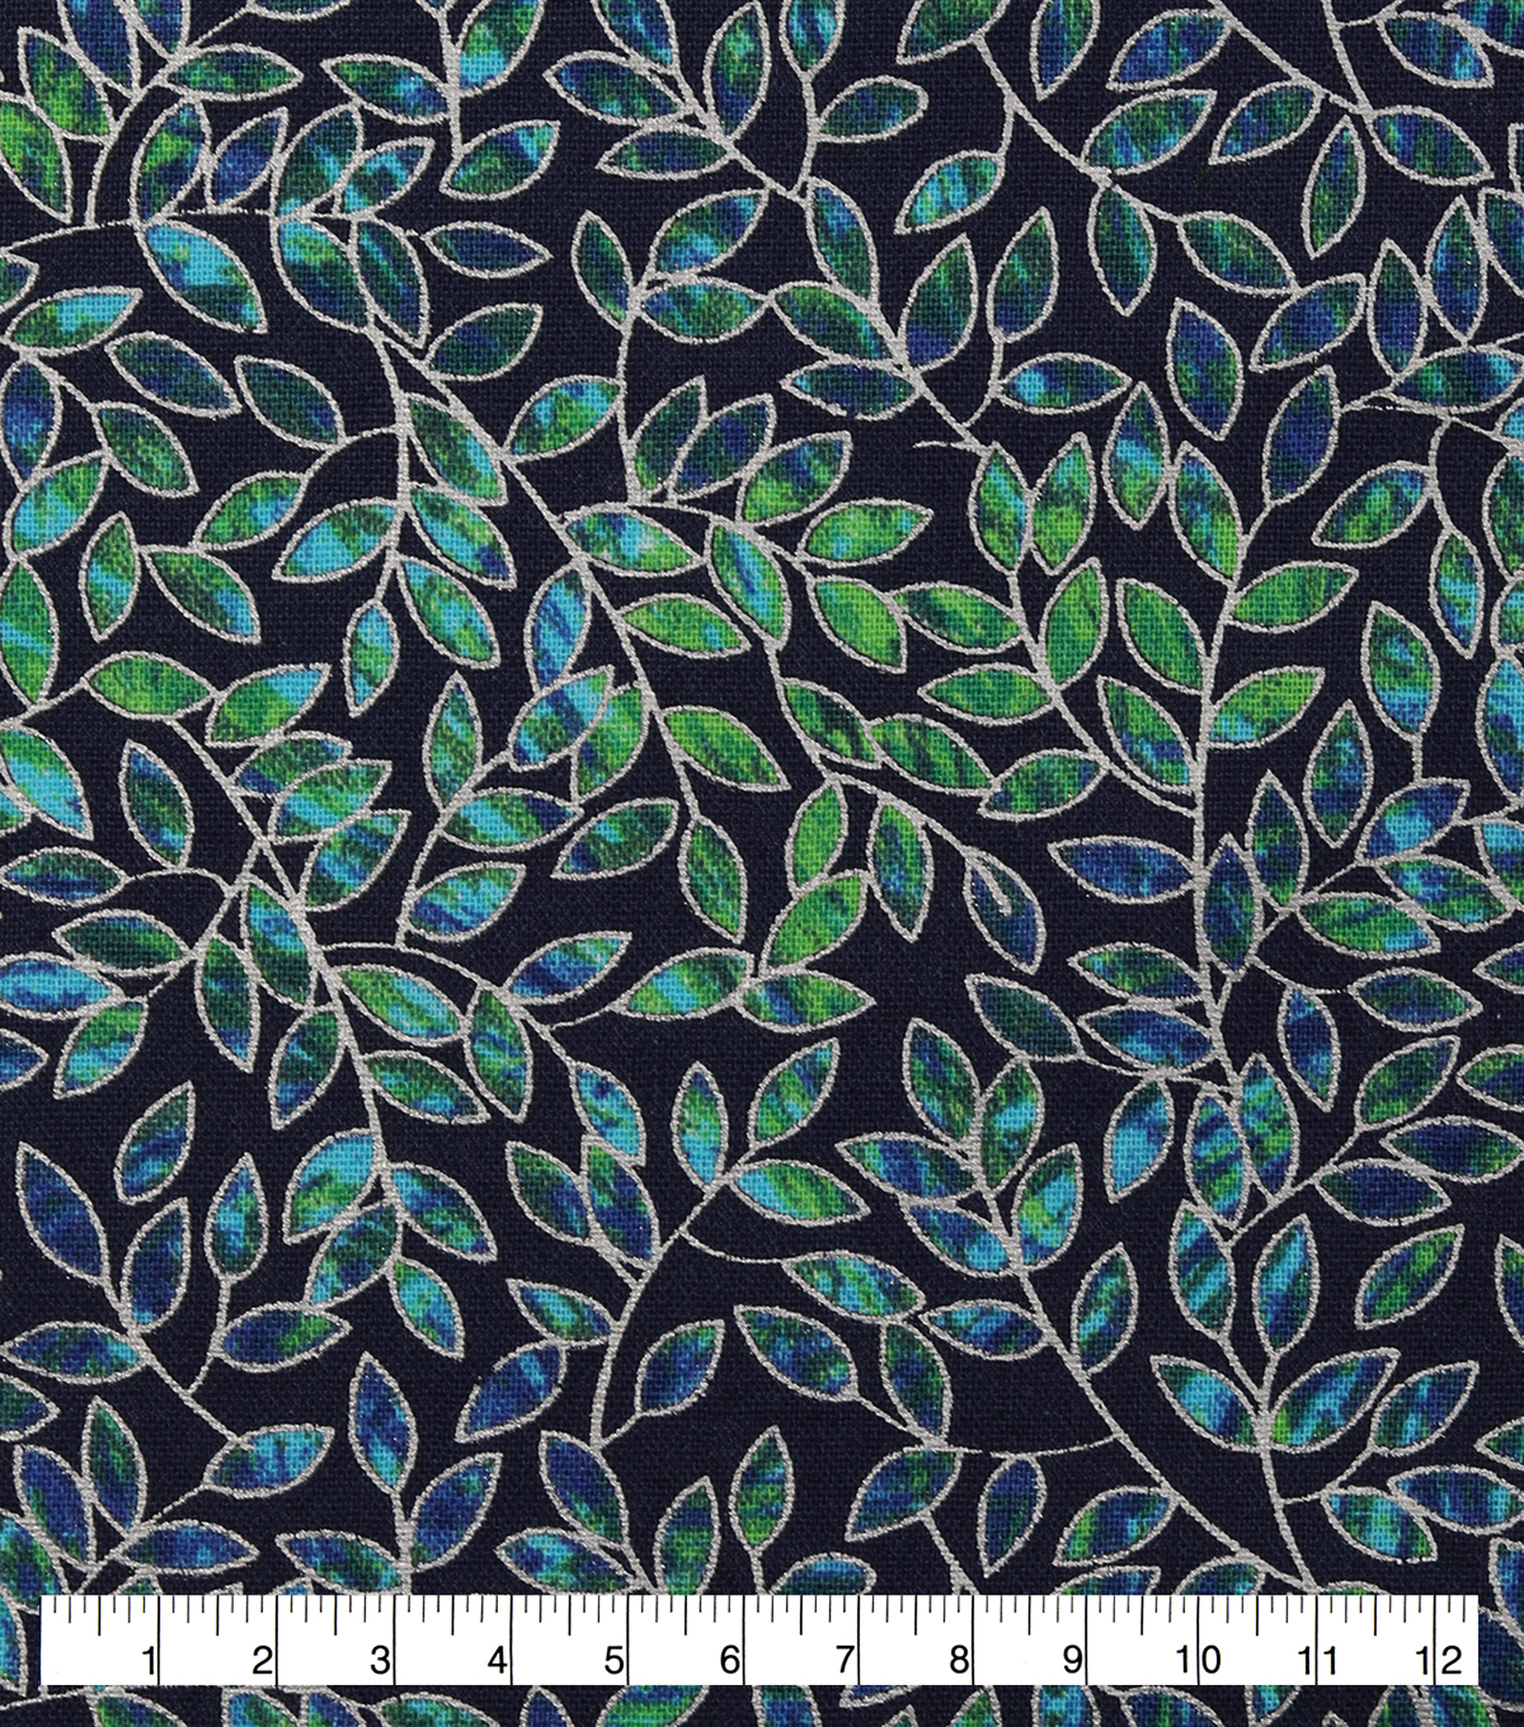 Keepsake Calico Cotton Fabric-Metallic Navy Vines